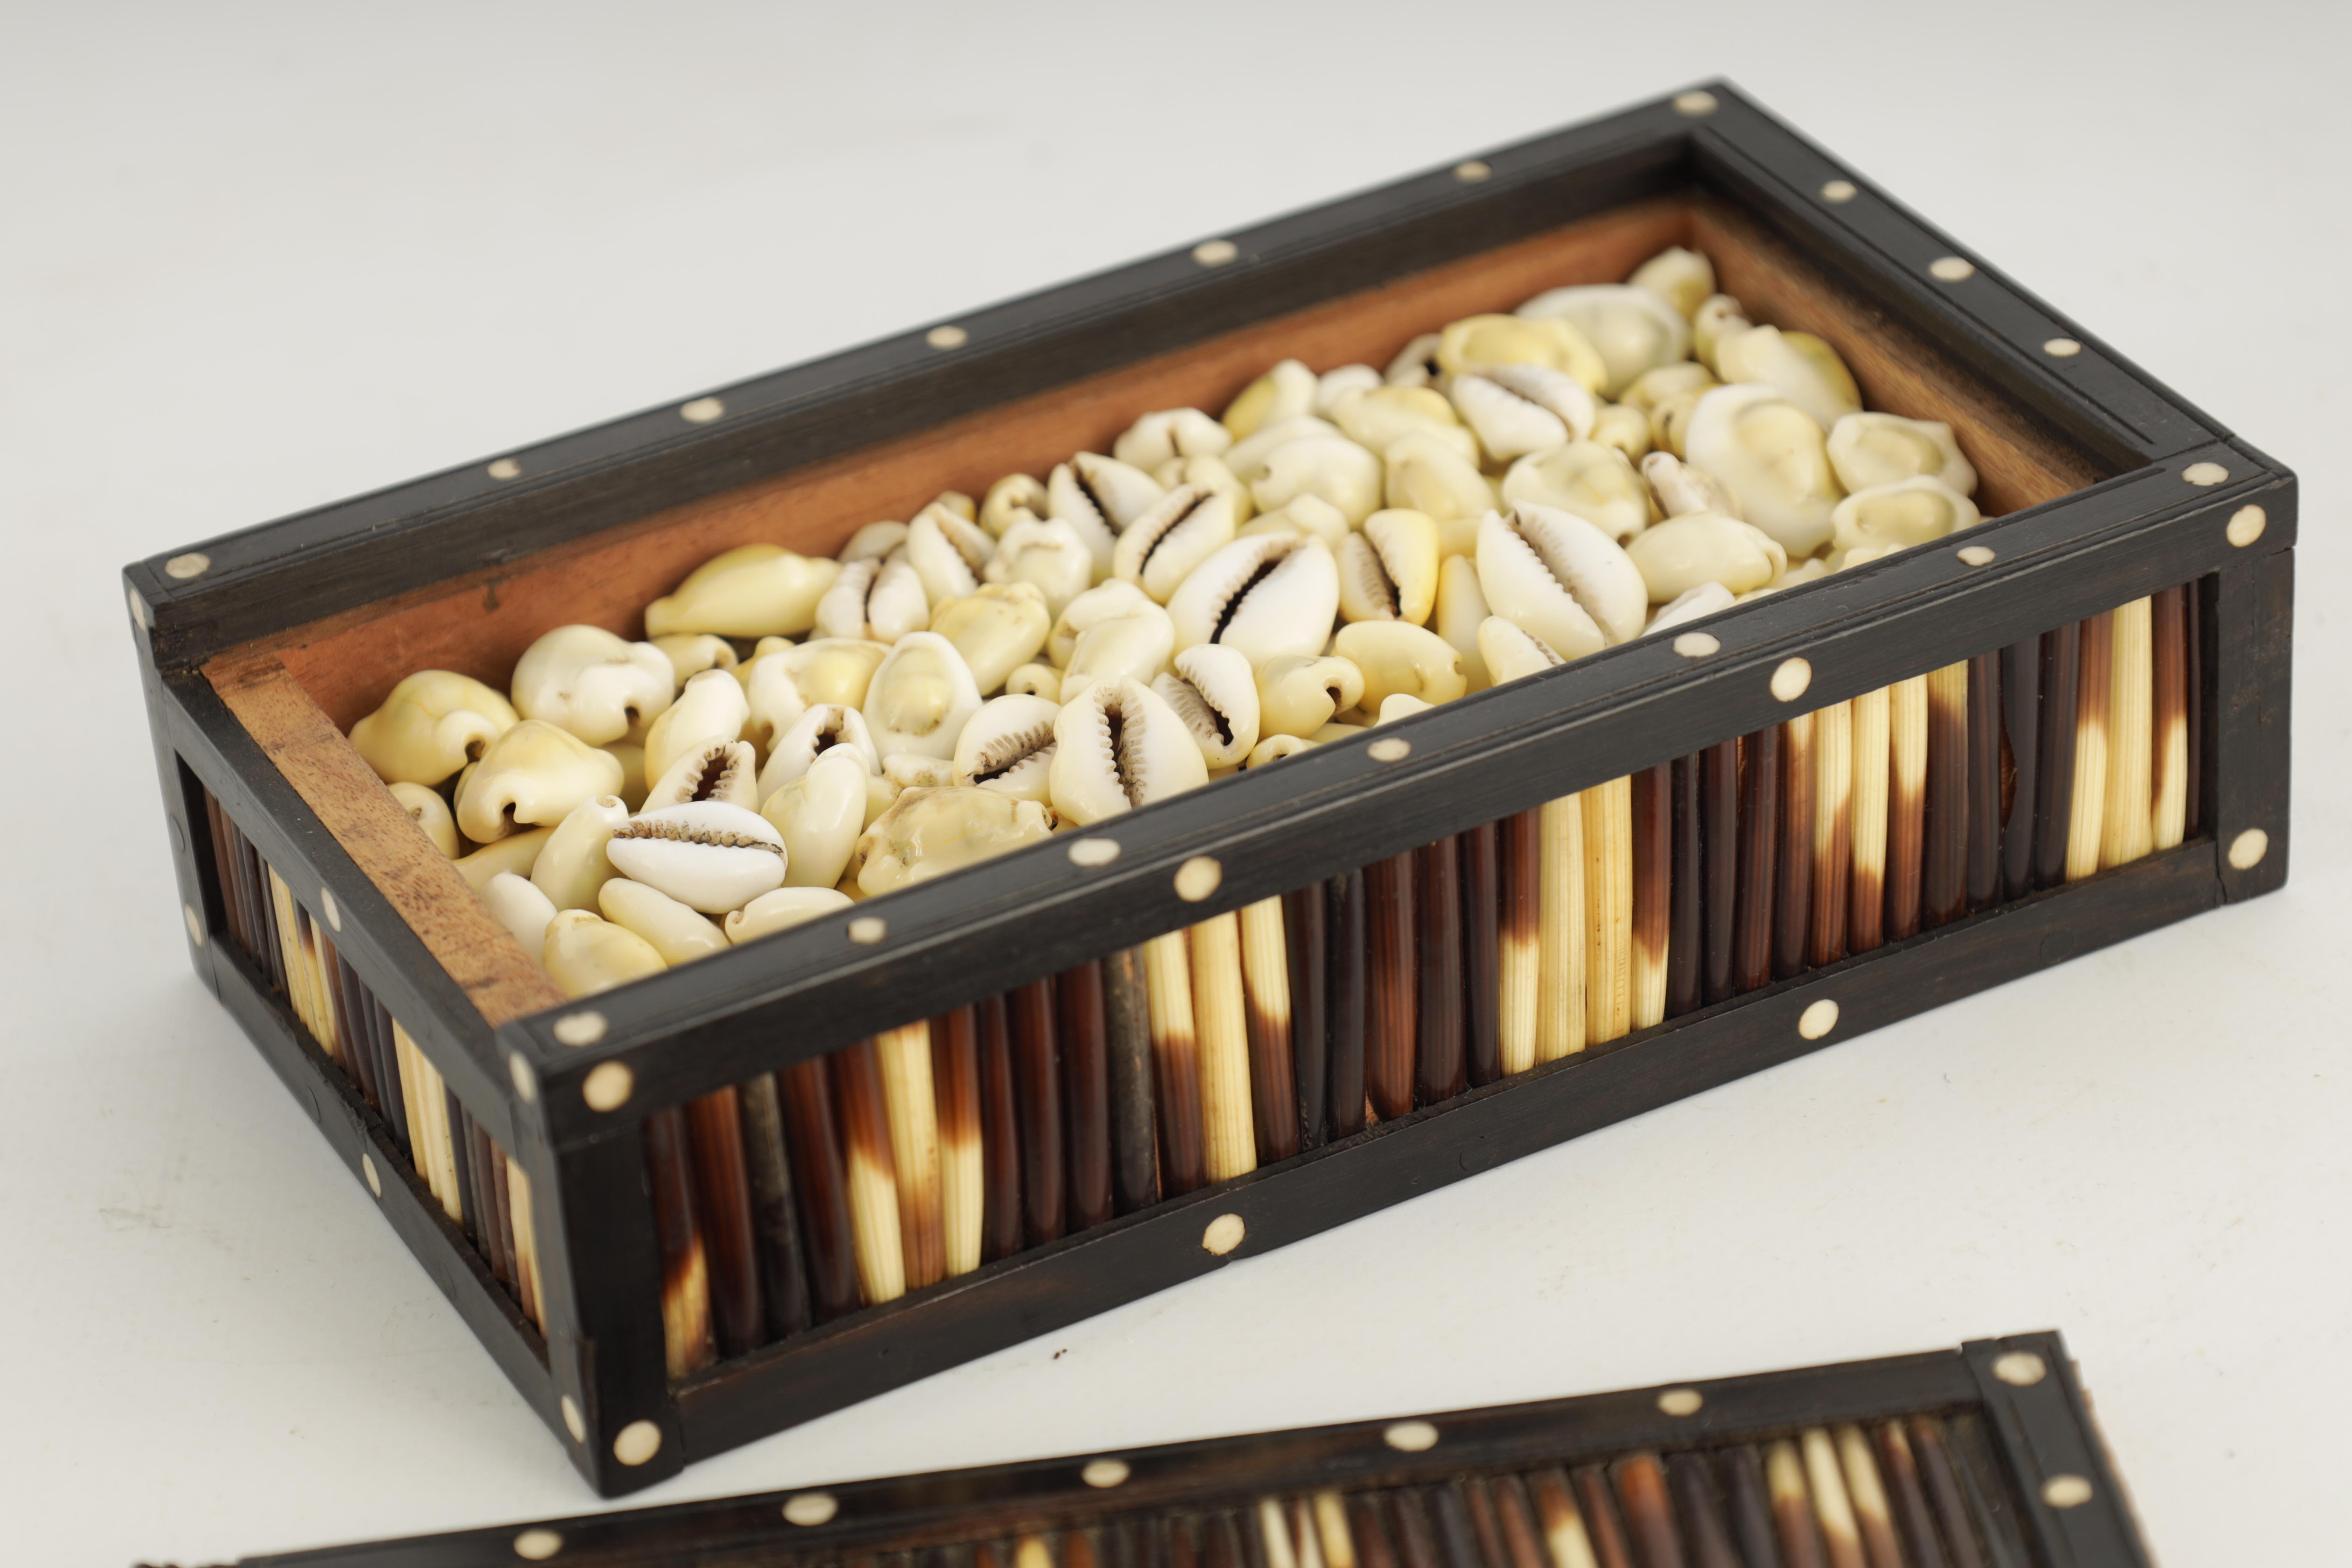 A 19TH CENTURY QUILL BOX with ebony and bone inlaid edges 17cm wide 9.5cm deep 4.5cm high - Image 6 of 7